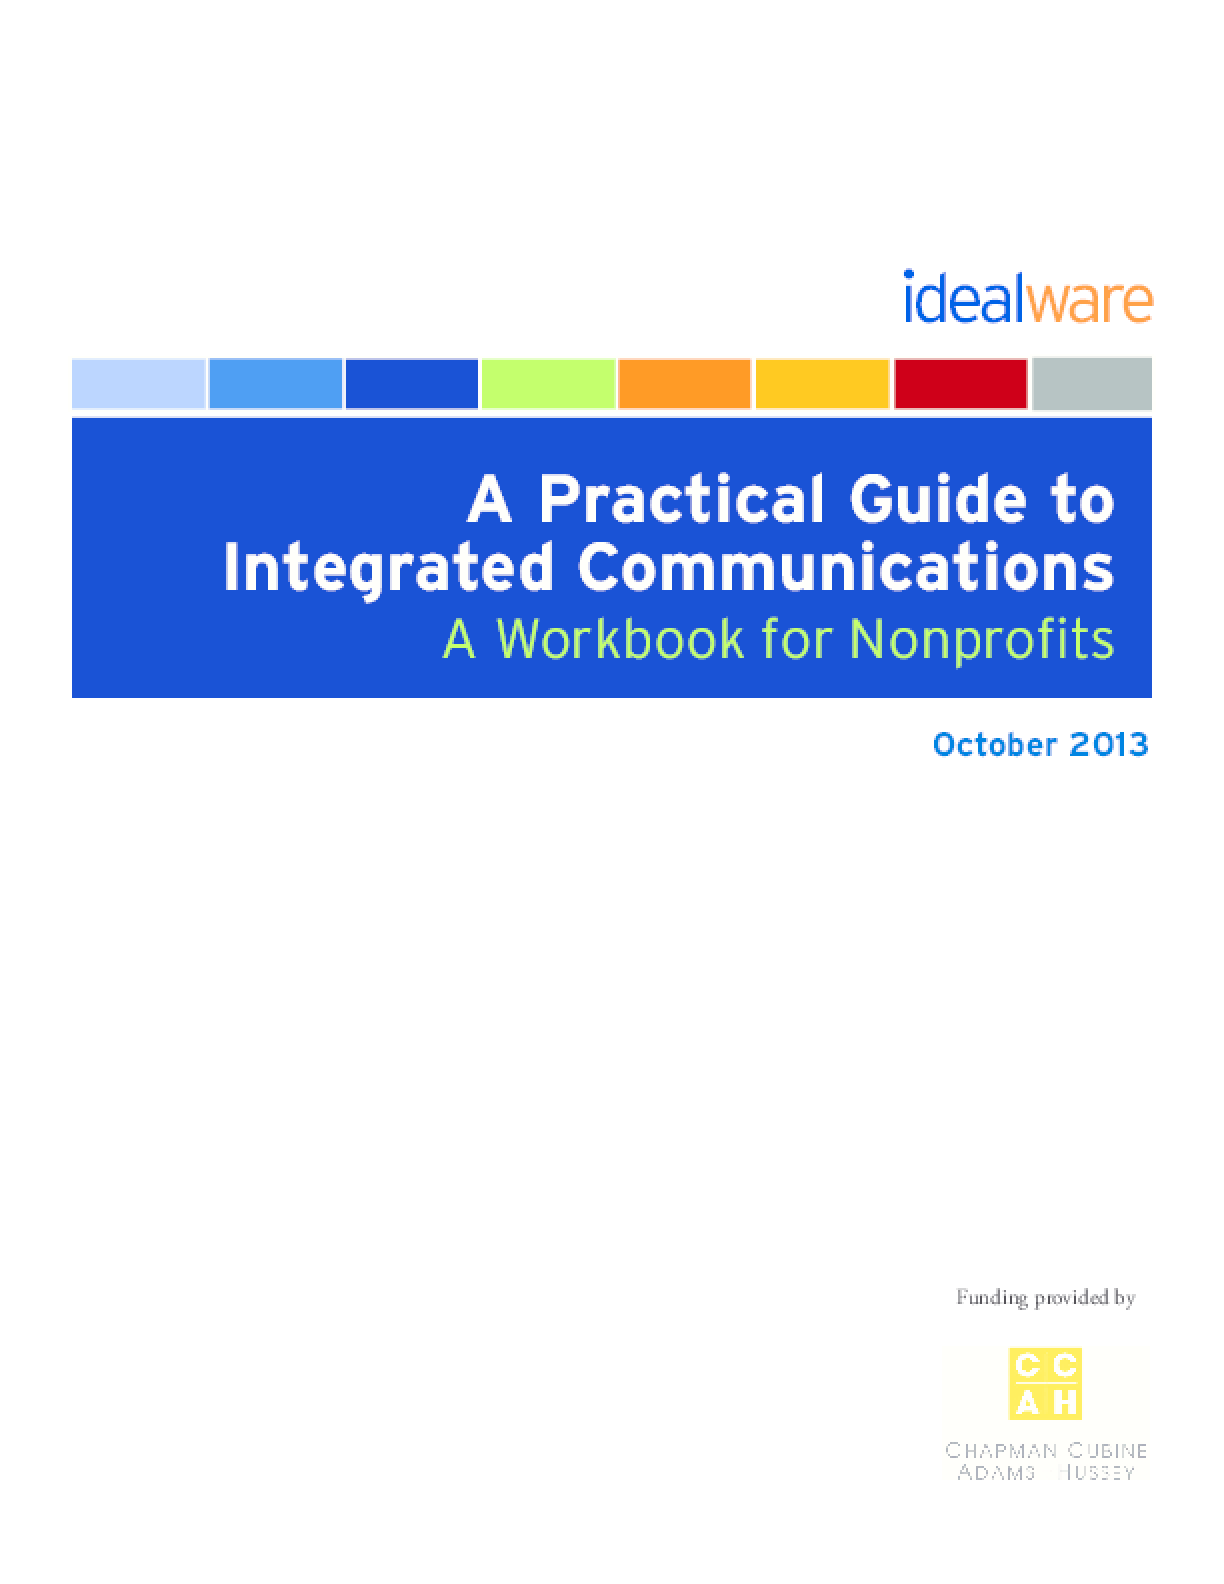 A Practical Guide to Integrated Communications: A Workbook for Nonprofits